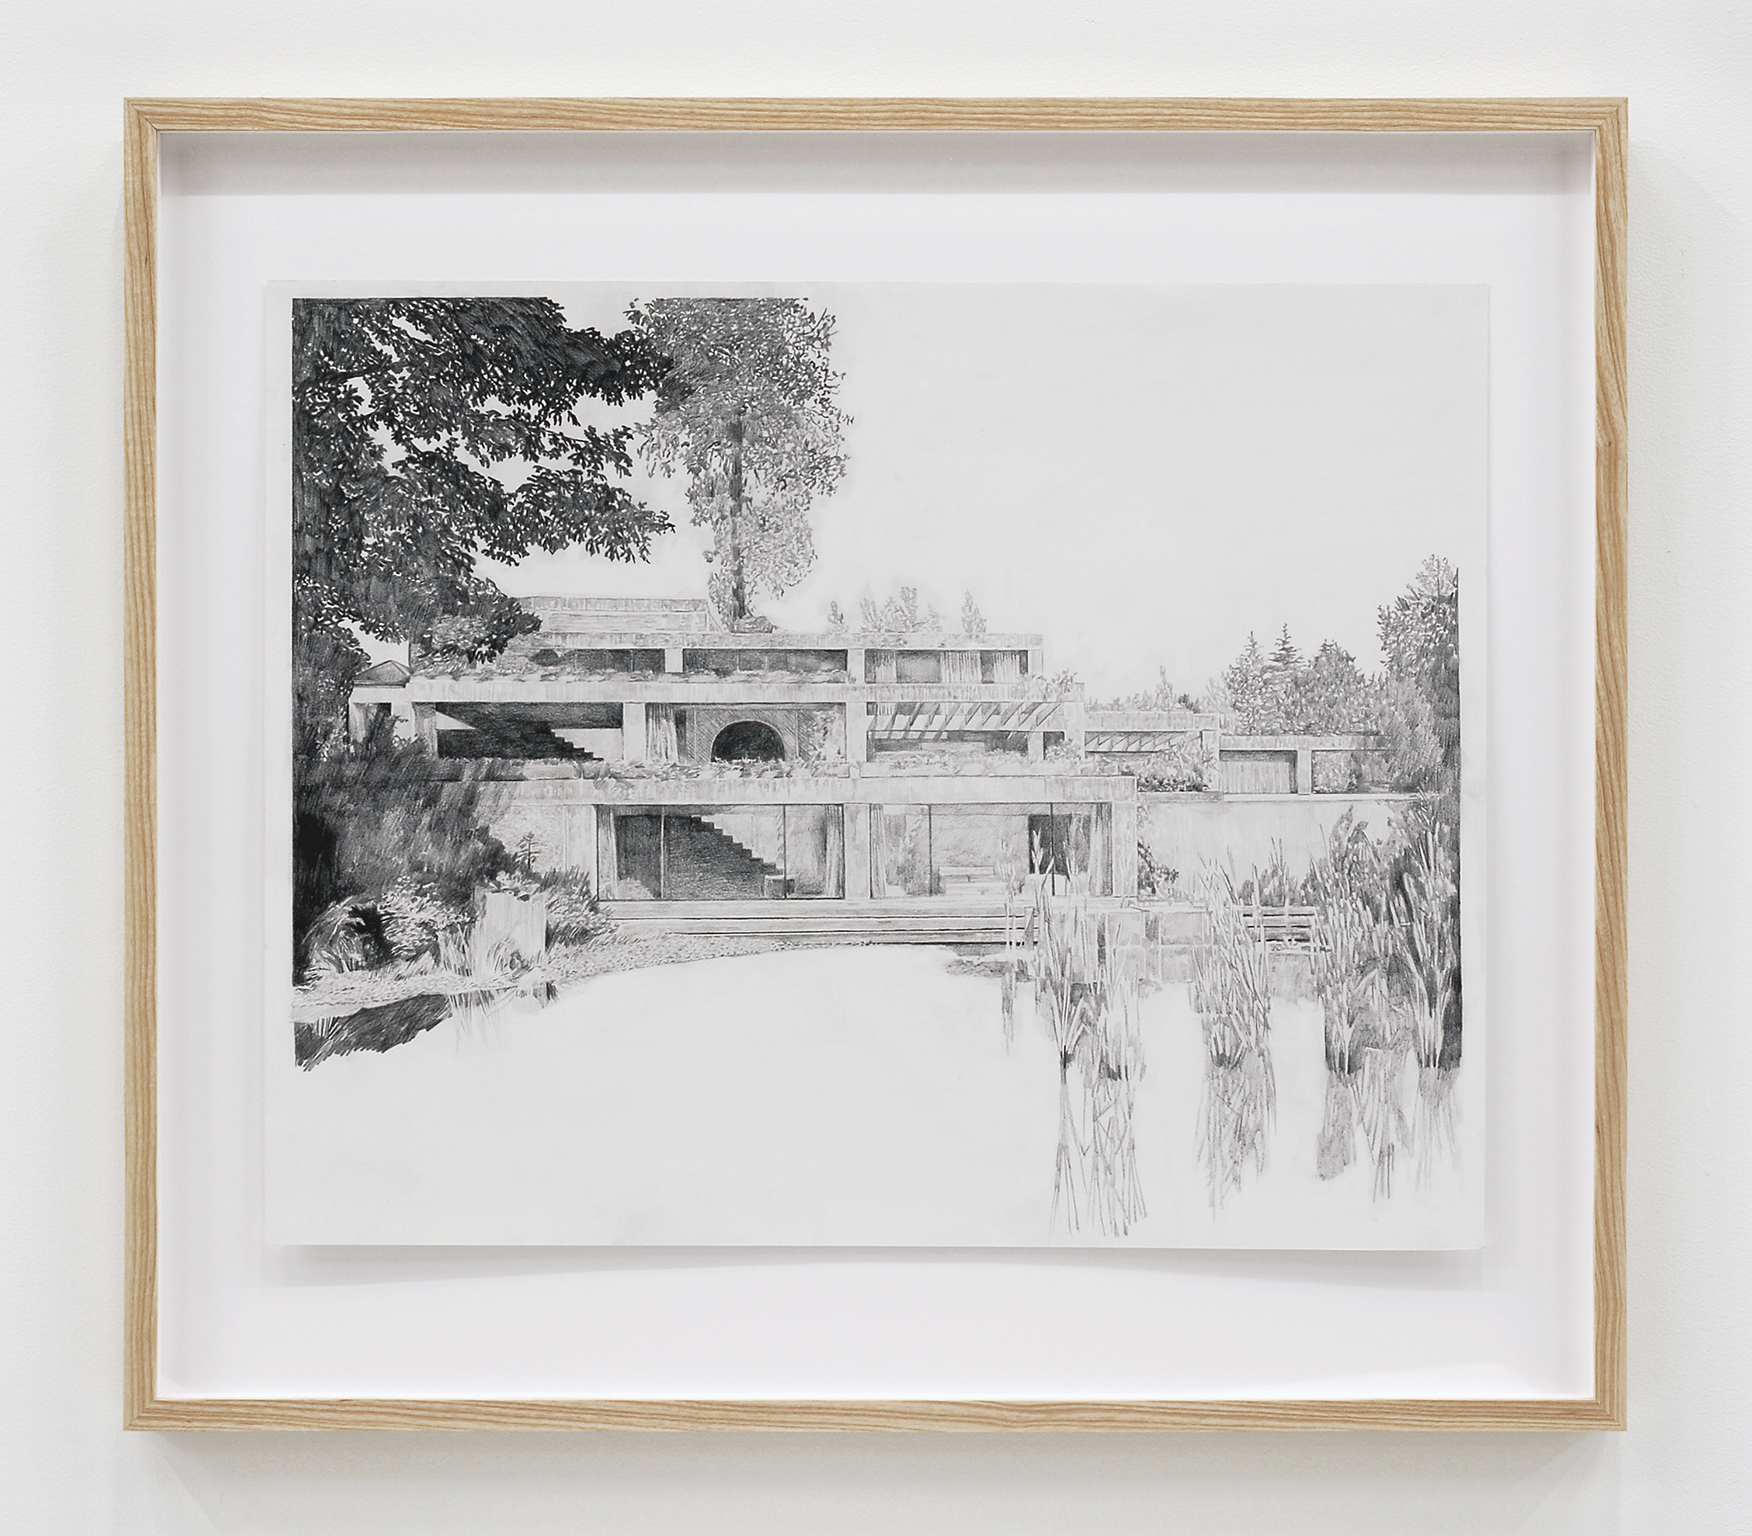 Alex Morrison, The Poetics of Grey (No. 13), 2007, graphite on paper, 26 x 29 in. (65 x 72 cm) by